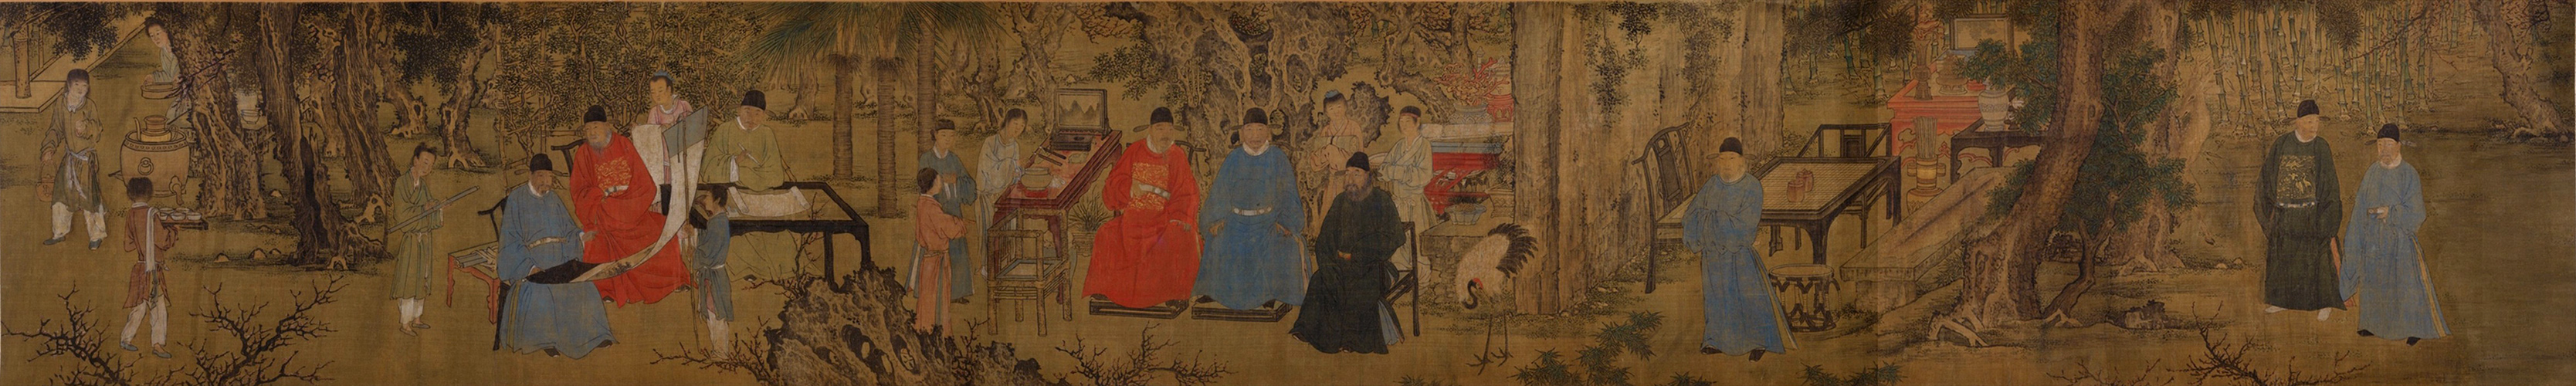 Xie Huan: Elegant Gathering in the Apricot Garden